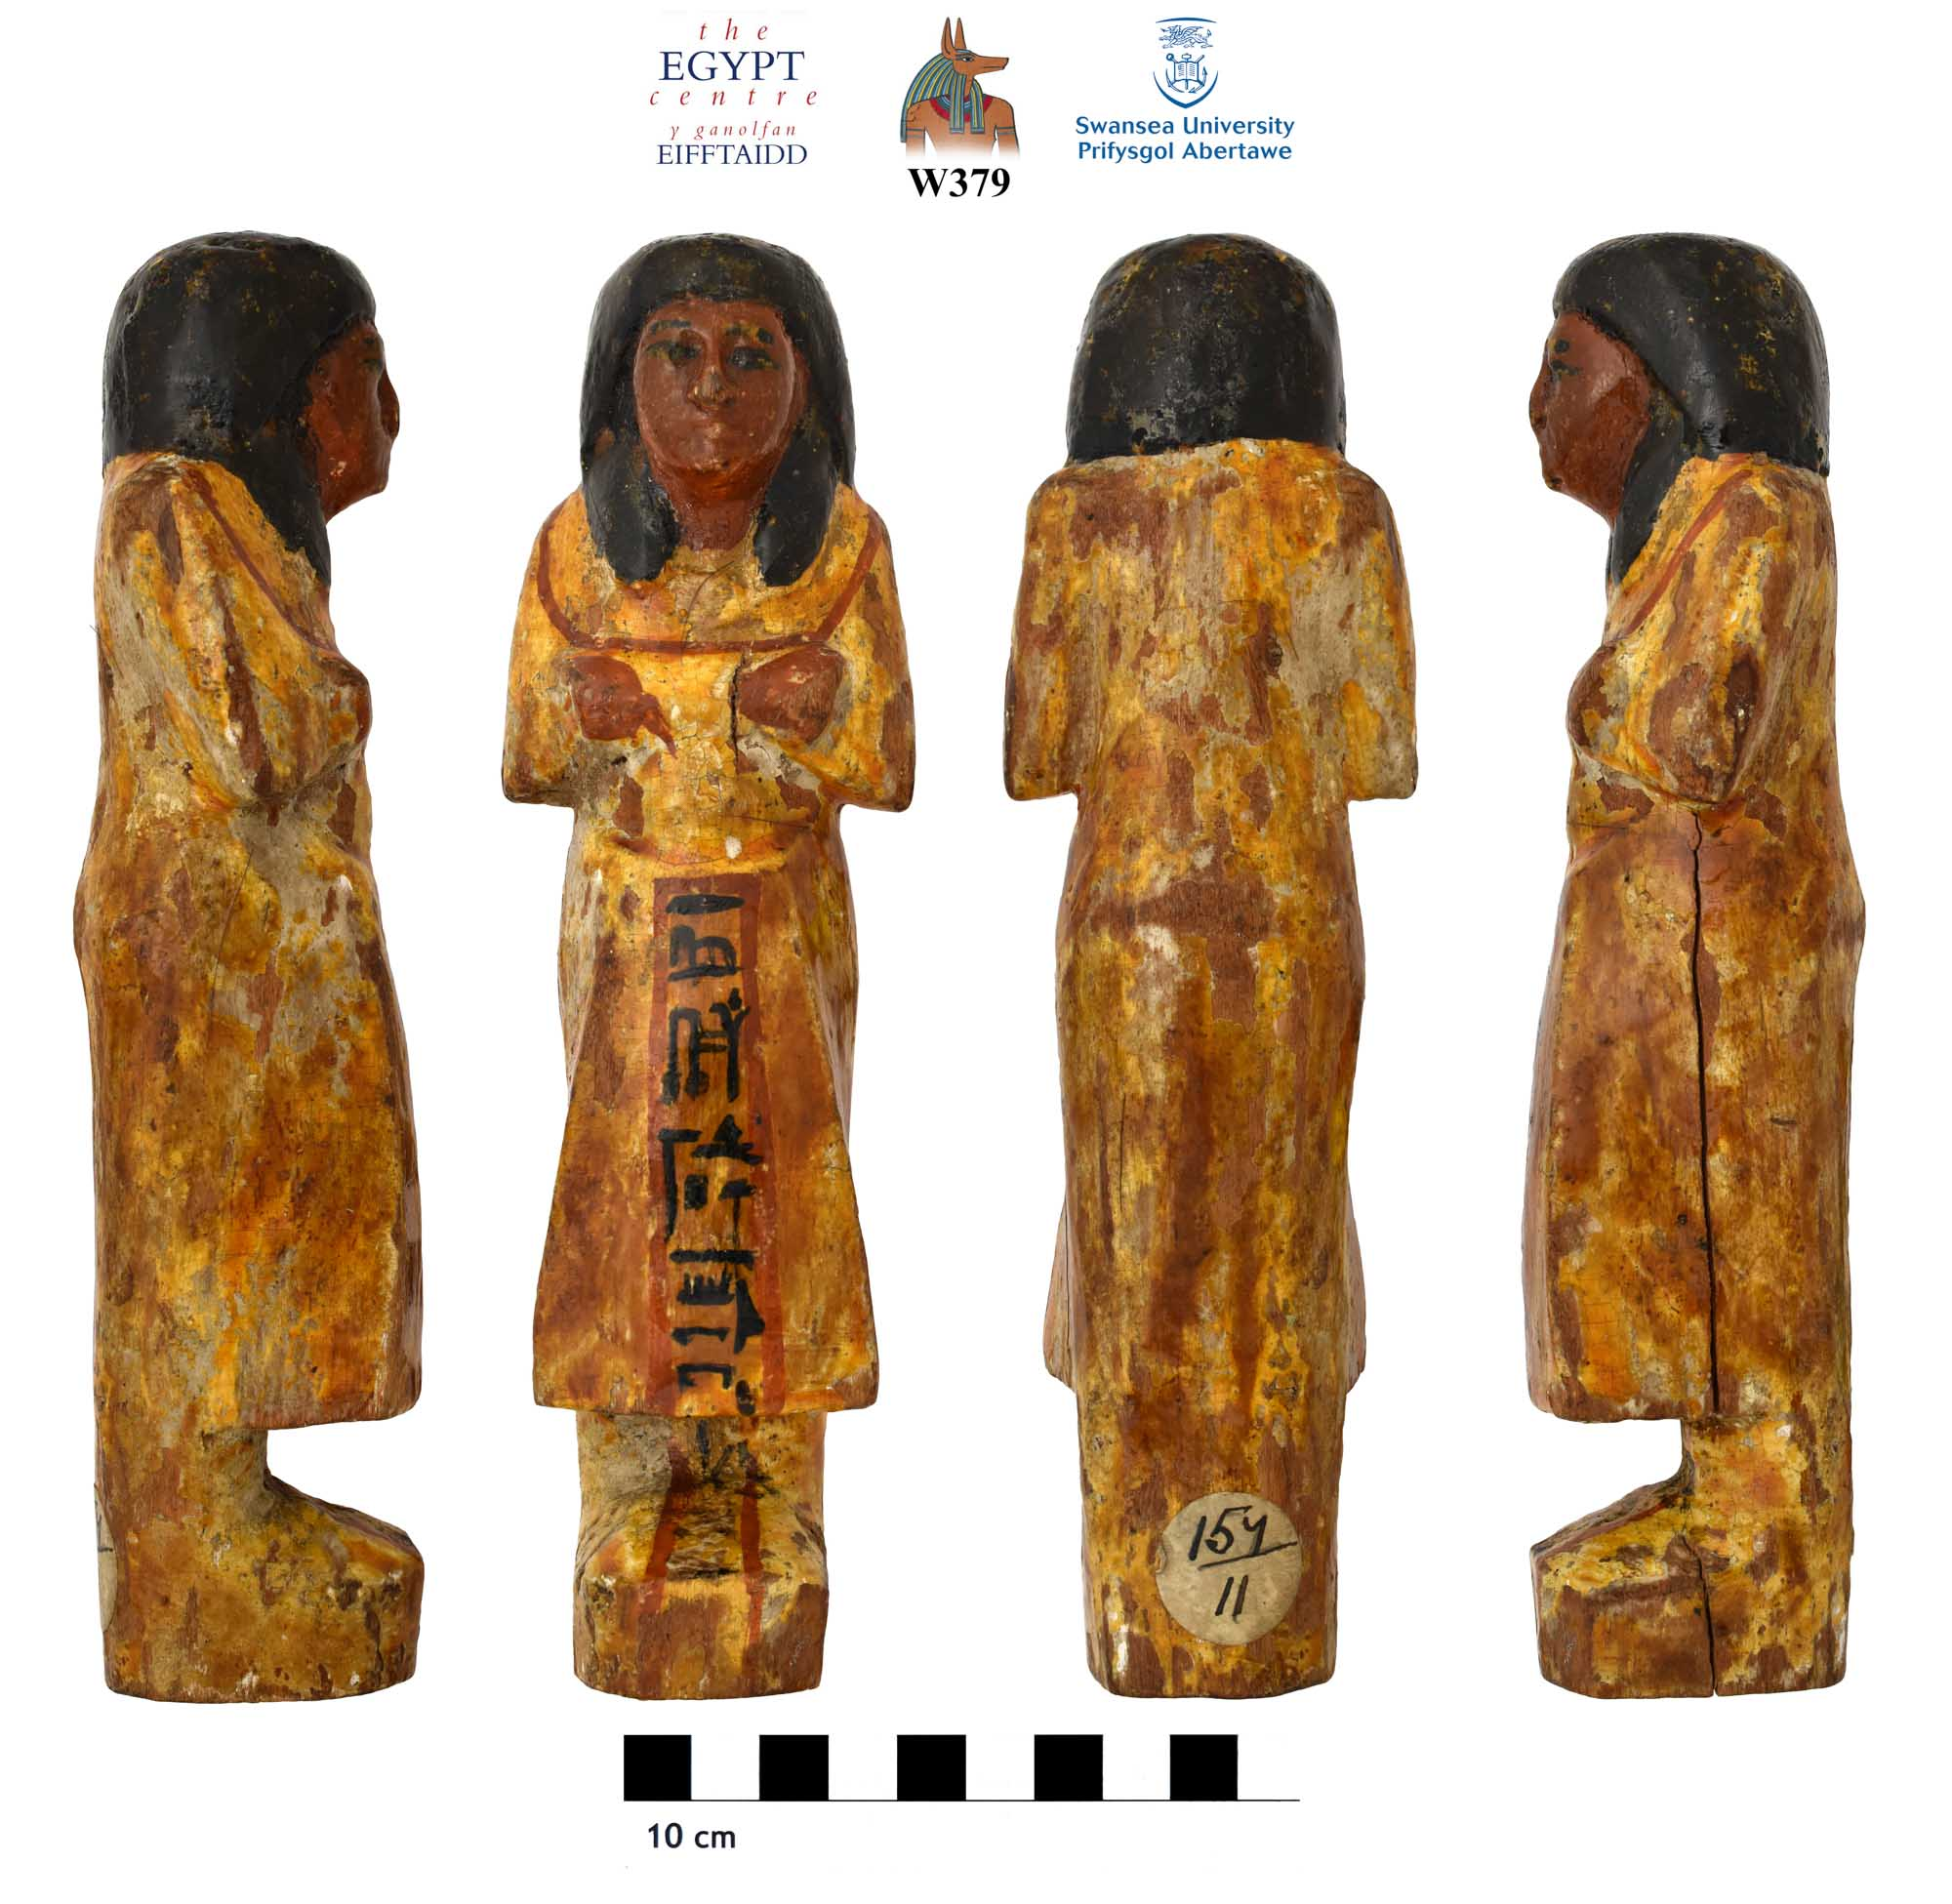 Image for: Overseer shabti